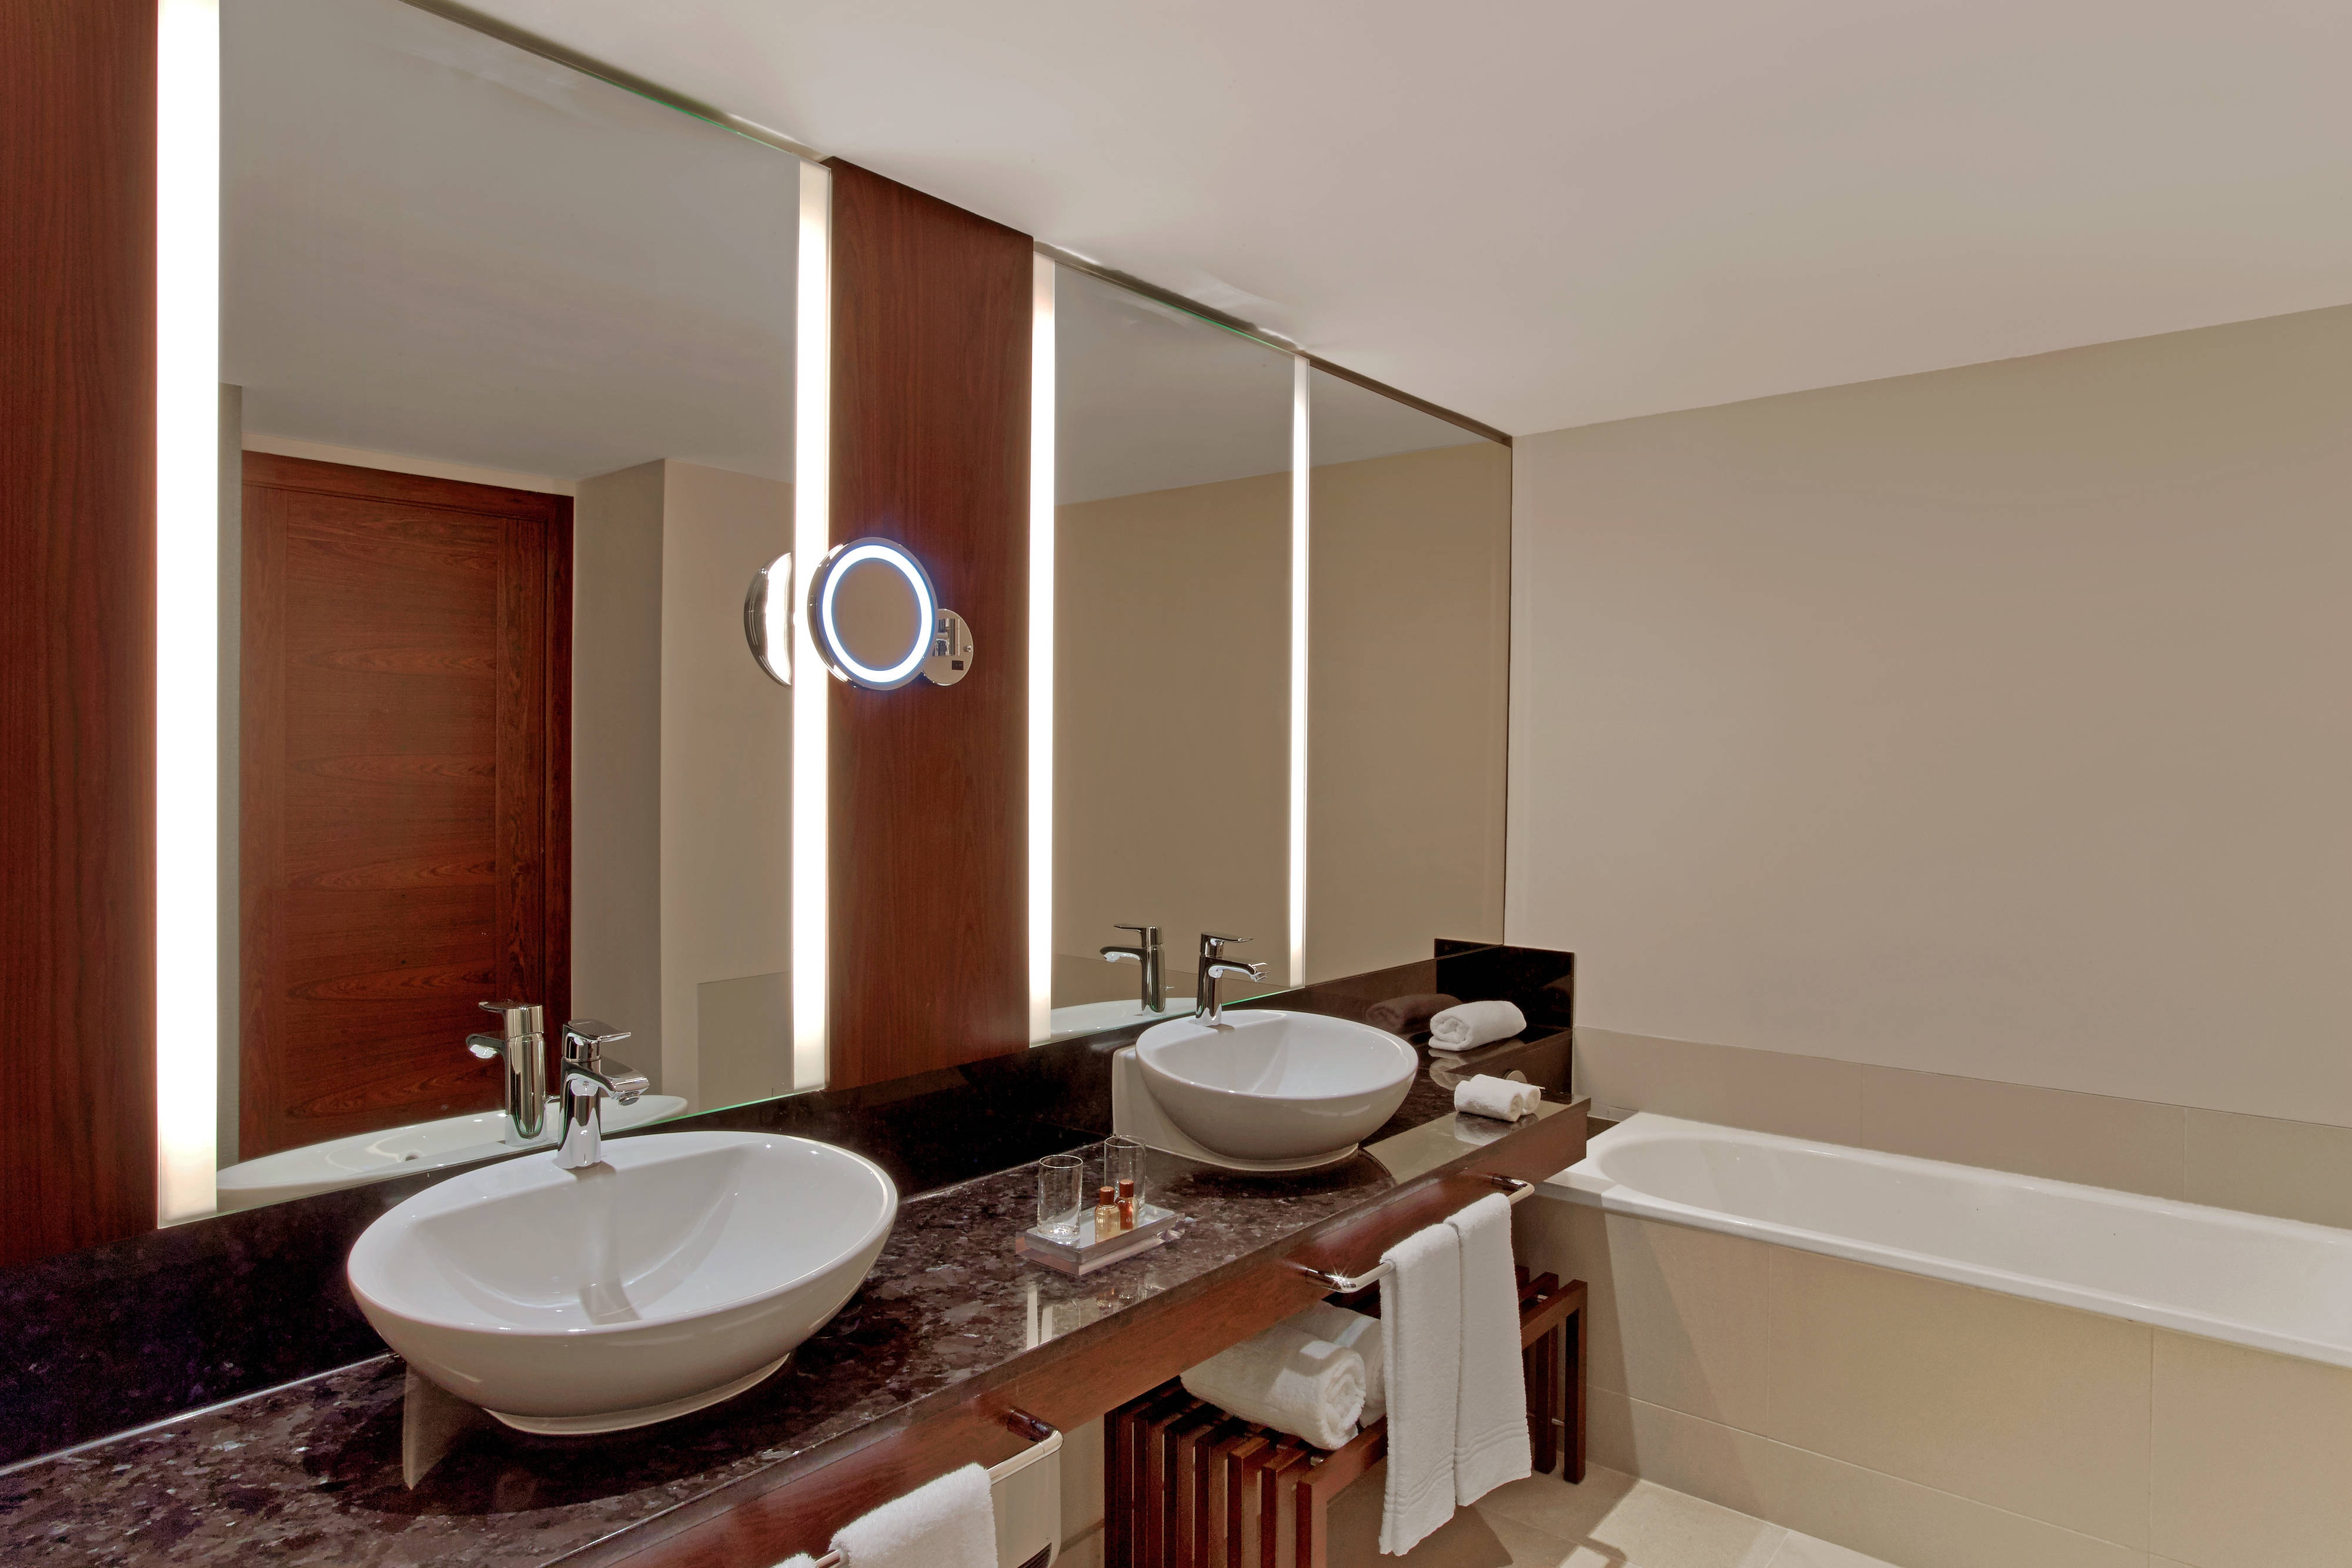 Hole in One Suite - Bathroom